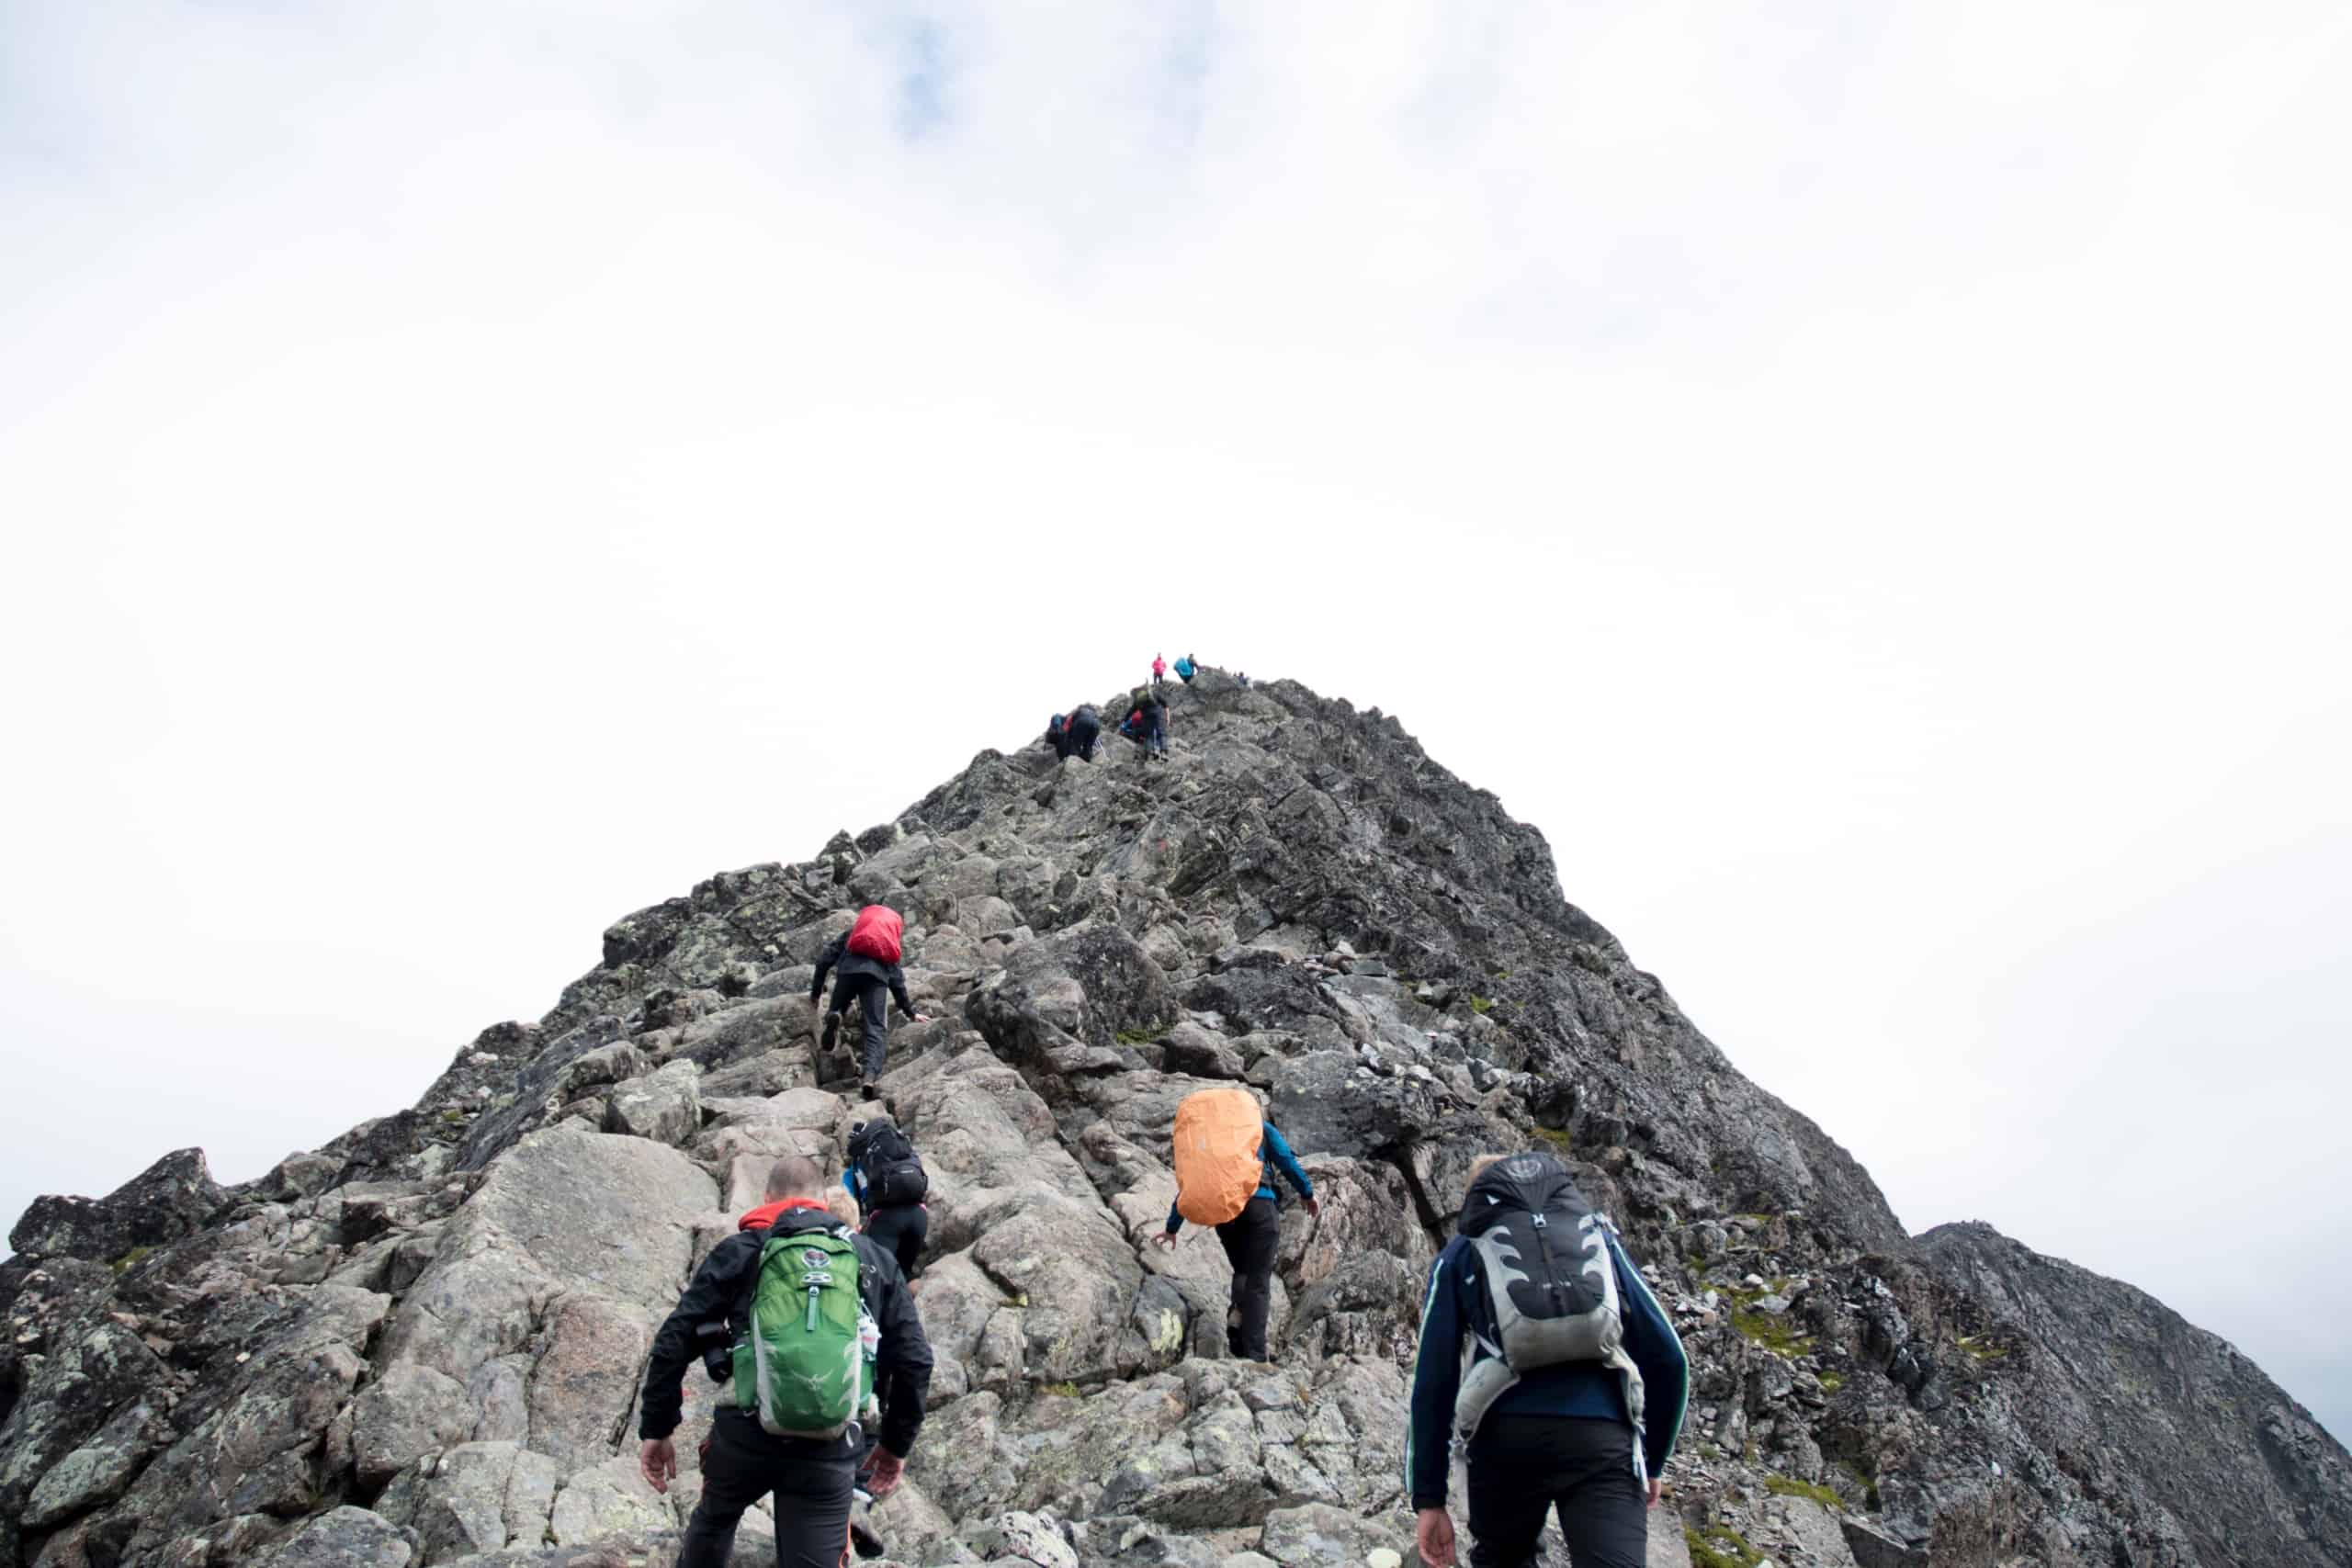 People following a leader up a mountain